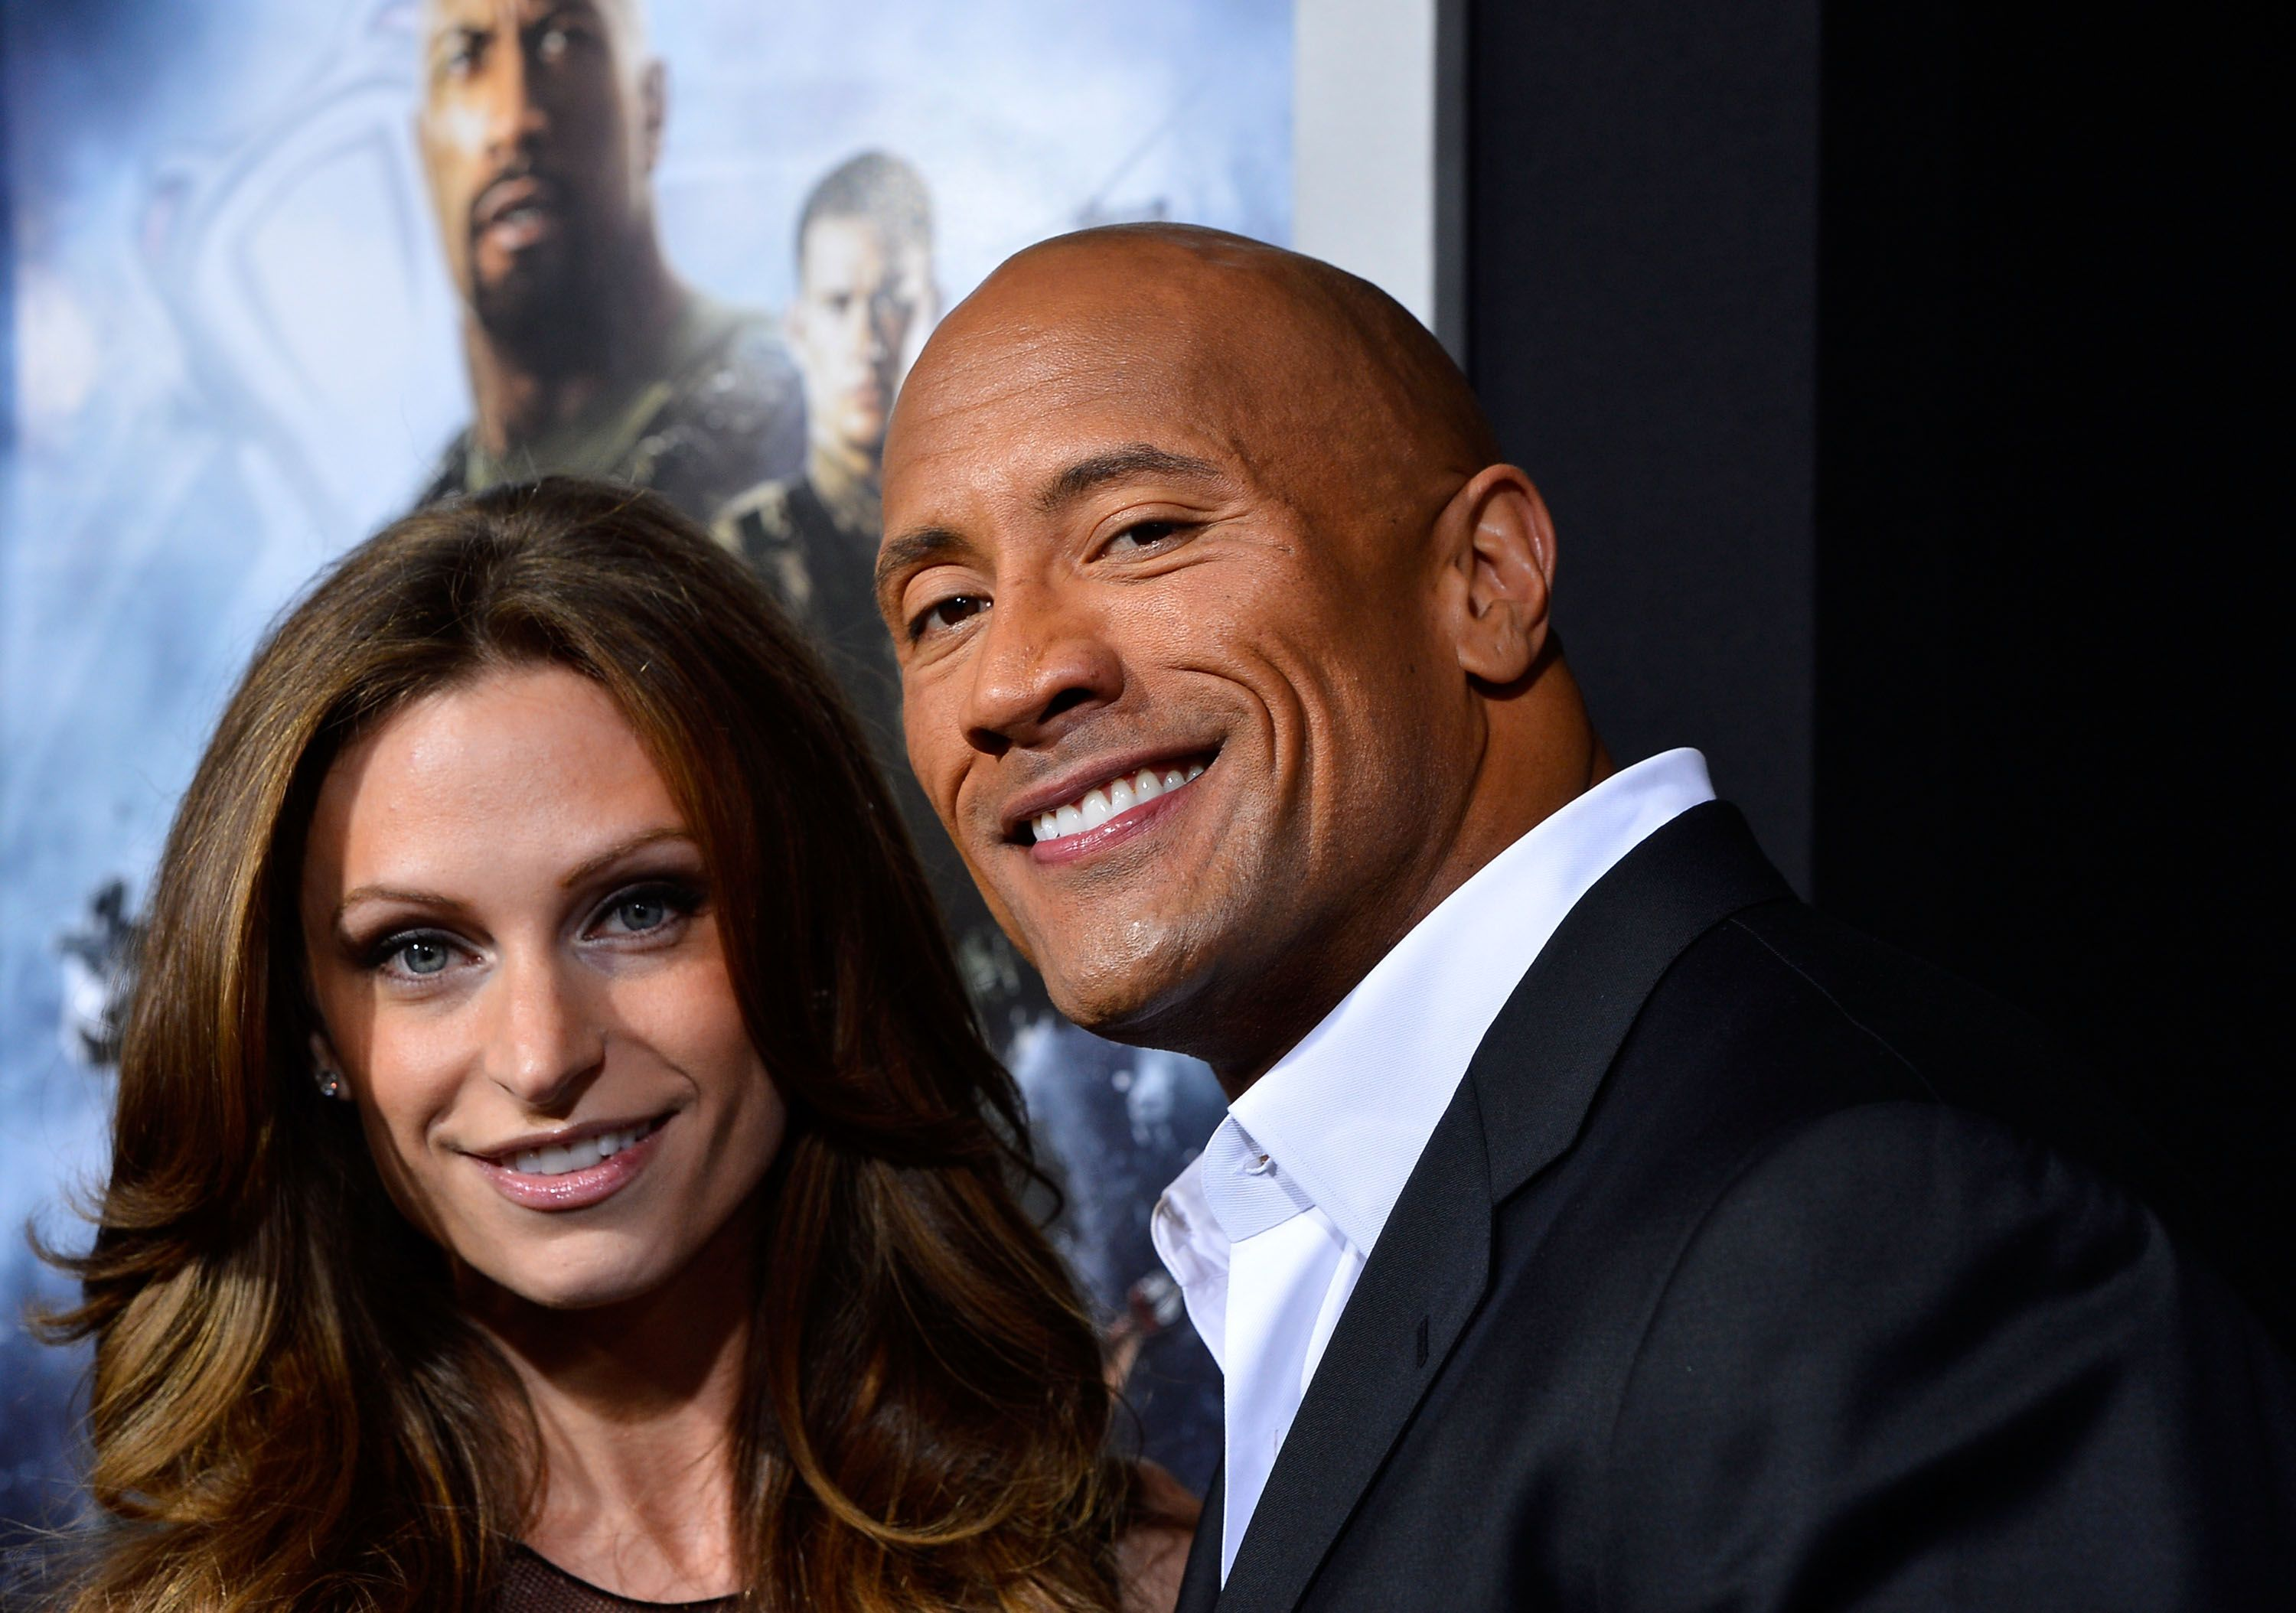 """Dwayne Johnson and Lauren Hashian at the Premiere of Paramount Pictures' """"G.I. Joe: Retaliation"""" at TCL Chinese Theatre on March 28, 2013 in Hollywood, California 